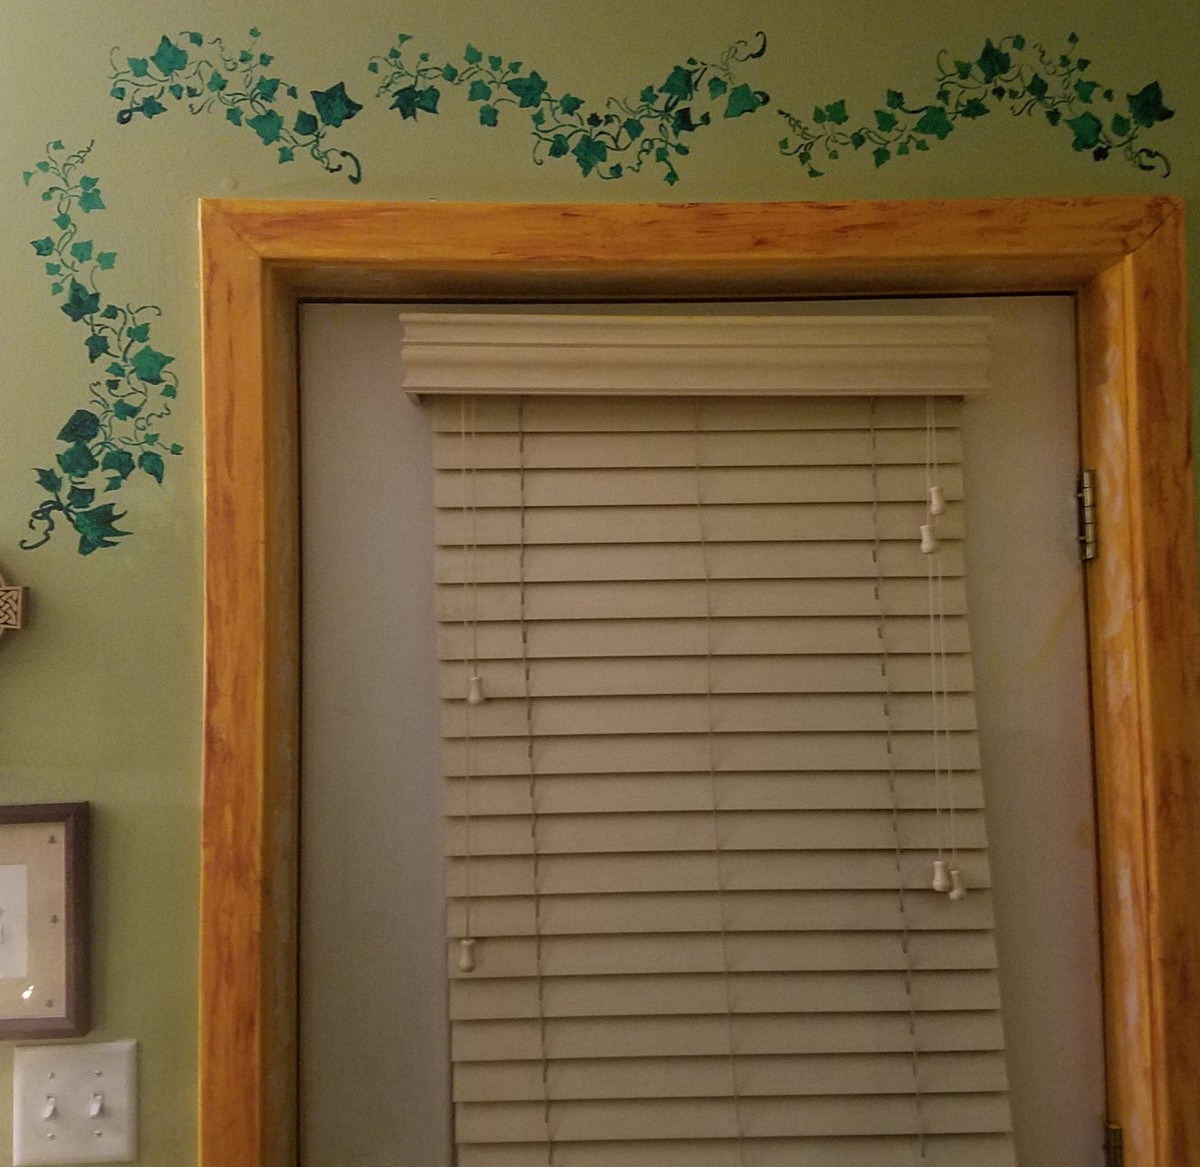 I love making my home beautifully unique by painting murals that are cheerful and engaging.